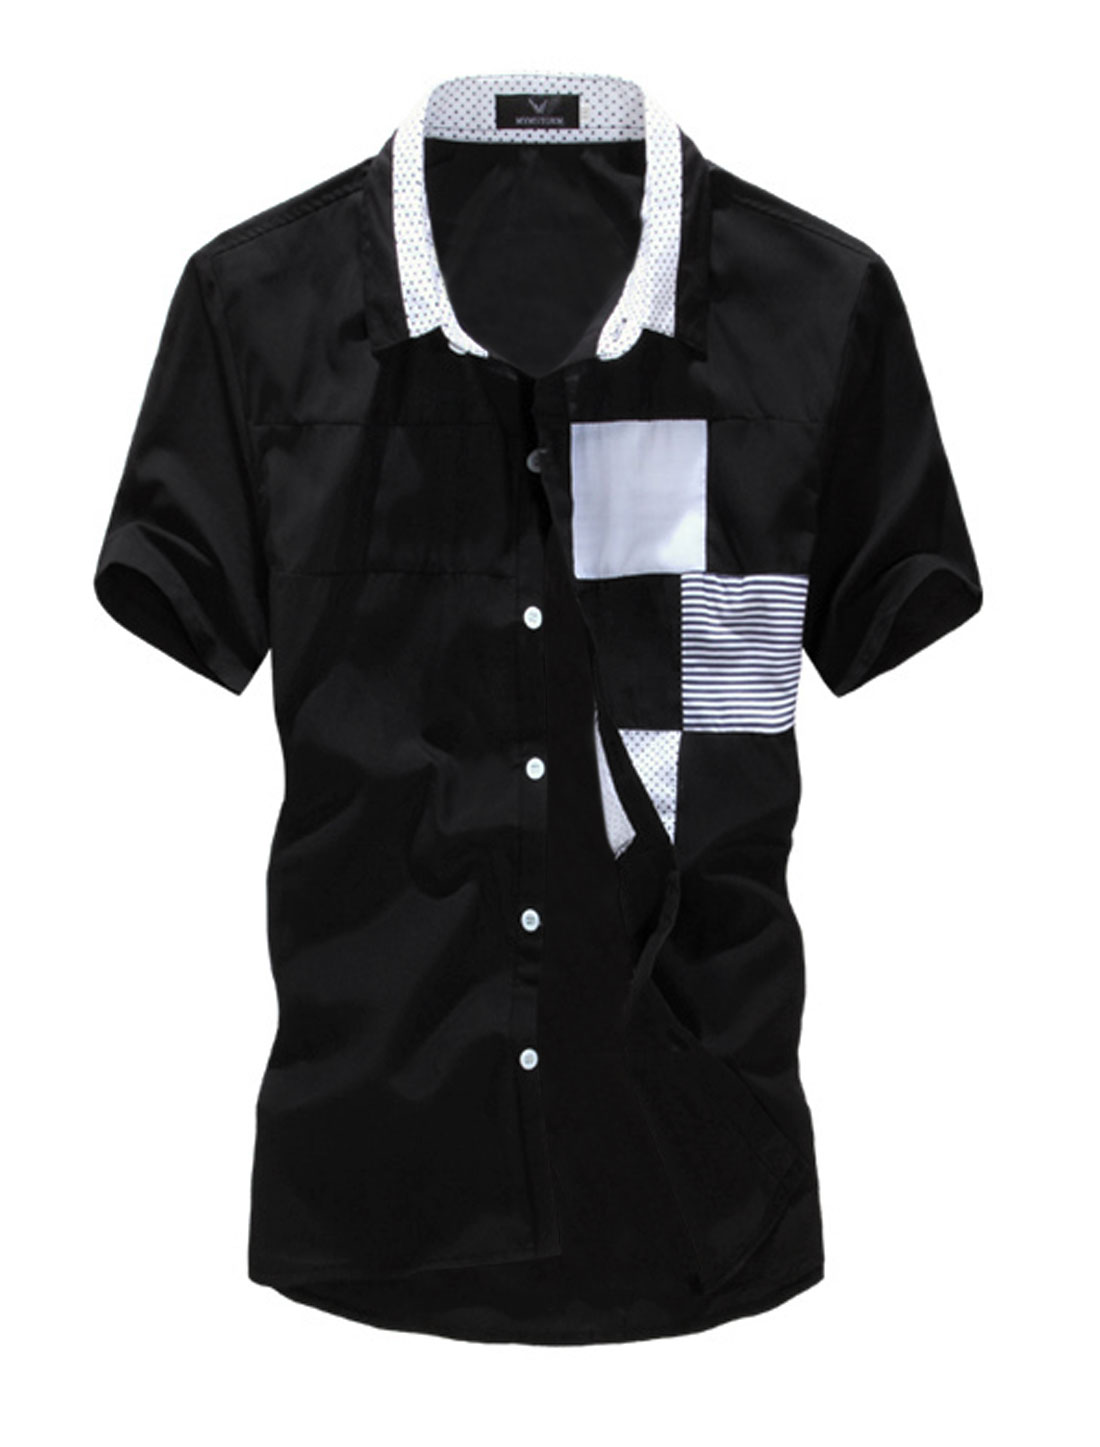 Men Leisure Dots Prints Colorblock Button Up Shirt Black M